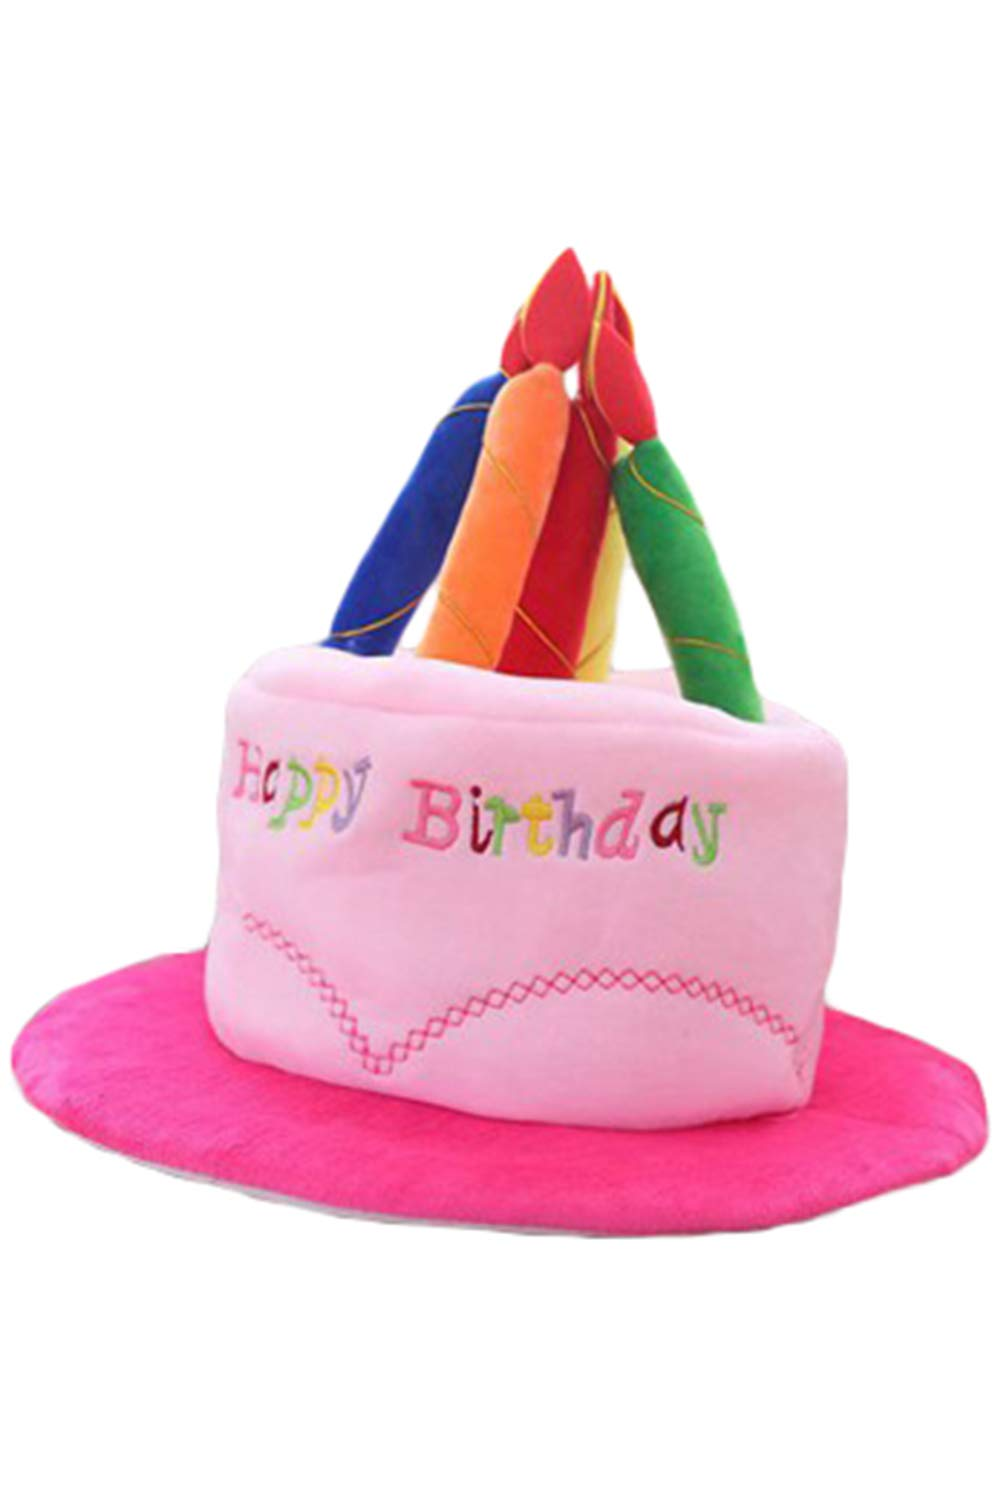 Amazon Adult Happy Birthday Cake Hat With Candles Fancy Dress Party Accessory Funny Decorations Hats Health